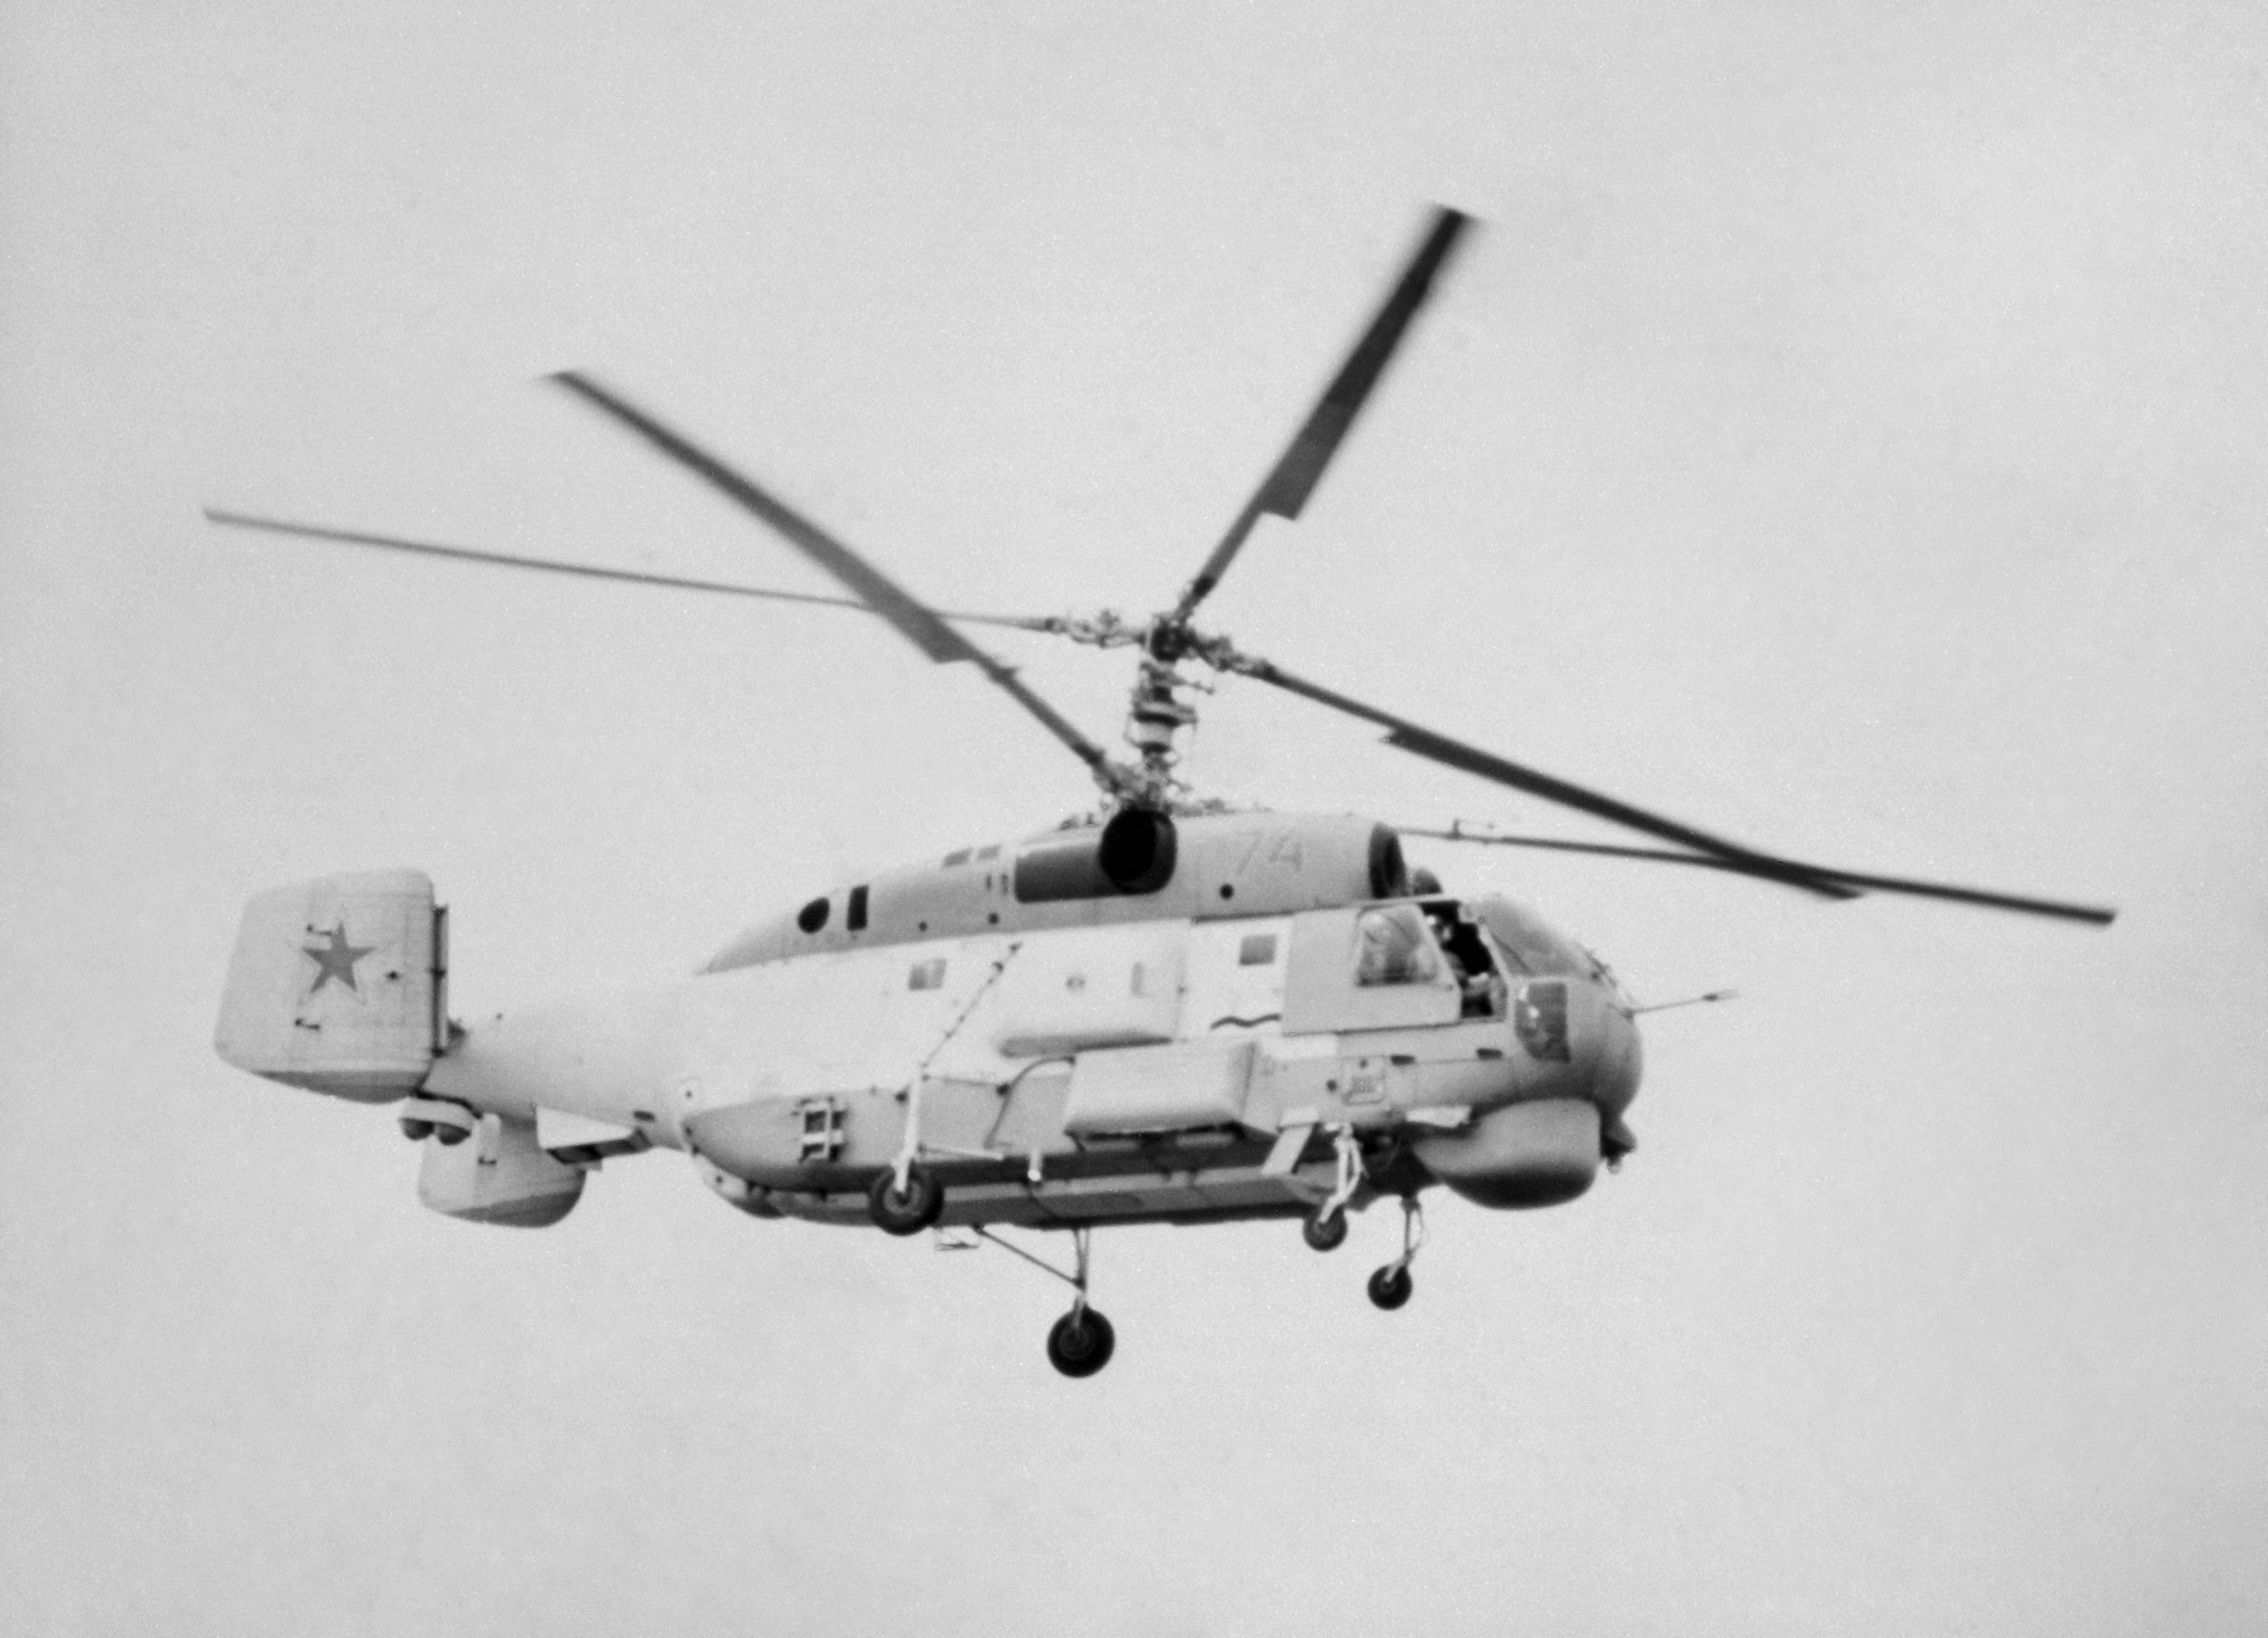 A right side view of a Soviet Ka-27 Helix anti-submarine warfare helicopter in flight